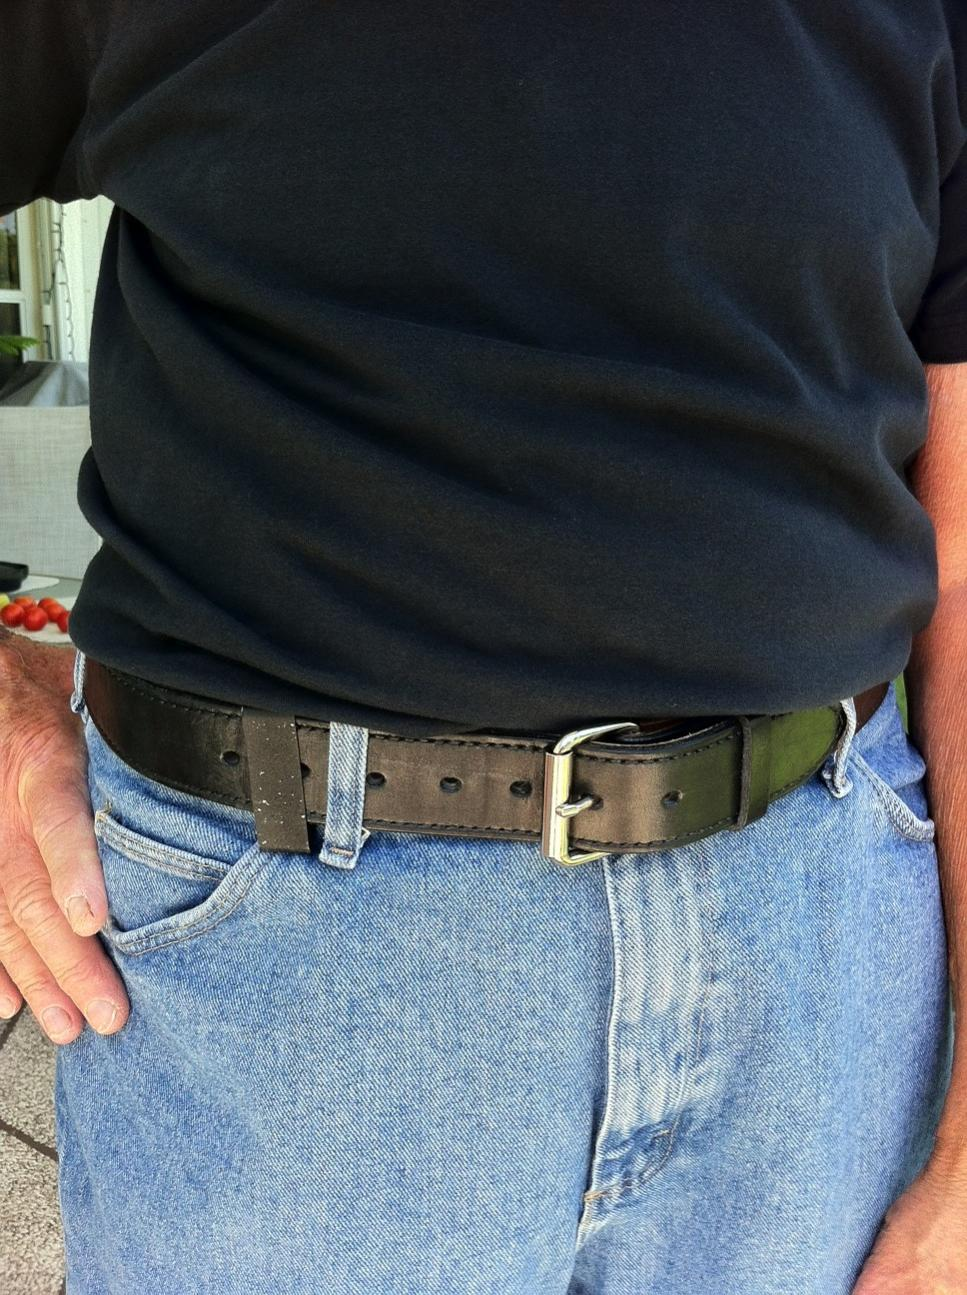 AIWB Holsters that pull grip closer to the body-image-3.jpg